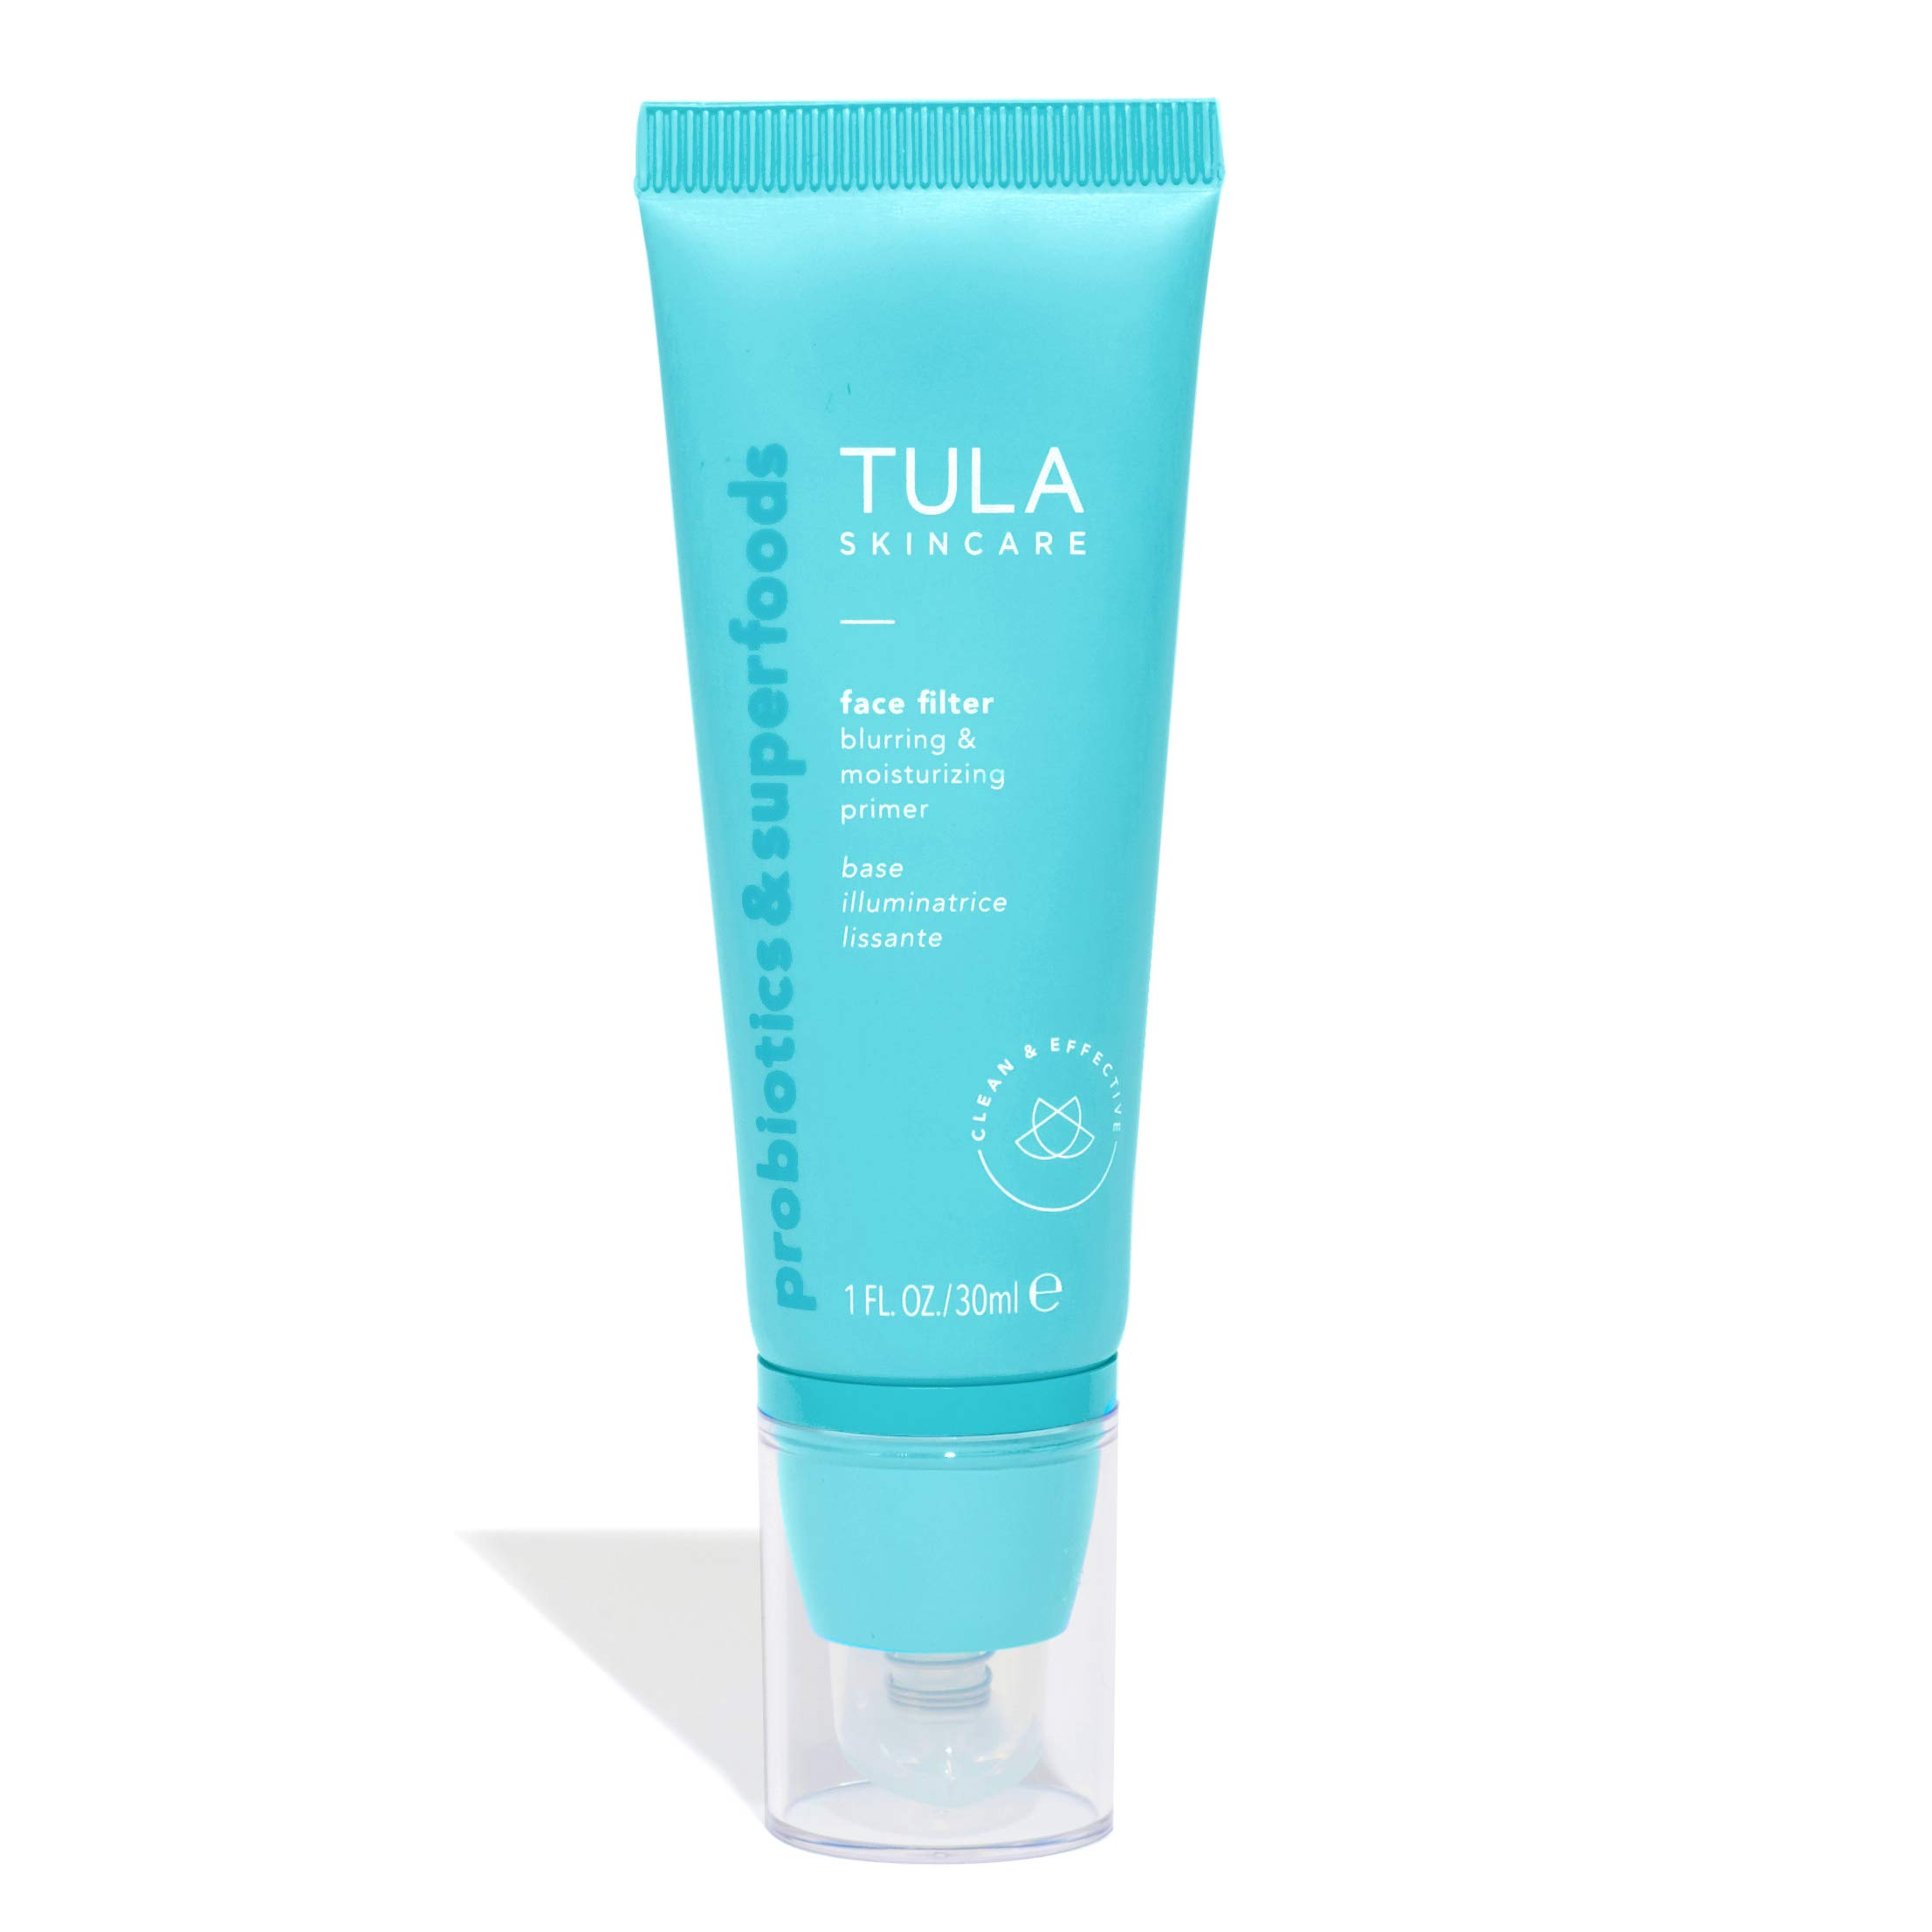 TULA Probiotic Skin Care Face Filter Blurring and Moisturizing Primer | Smoothing Face Primer, Evens the Appearance of Skin Tone & Redness, Hydrates & Improves Makeup Wear | 1 fl. oz. by TULA